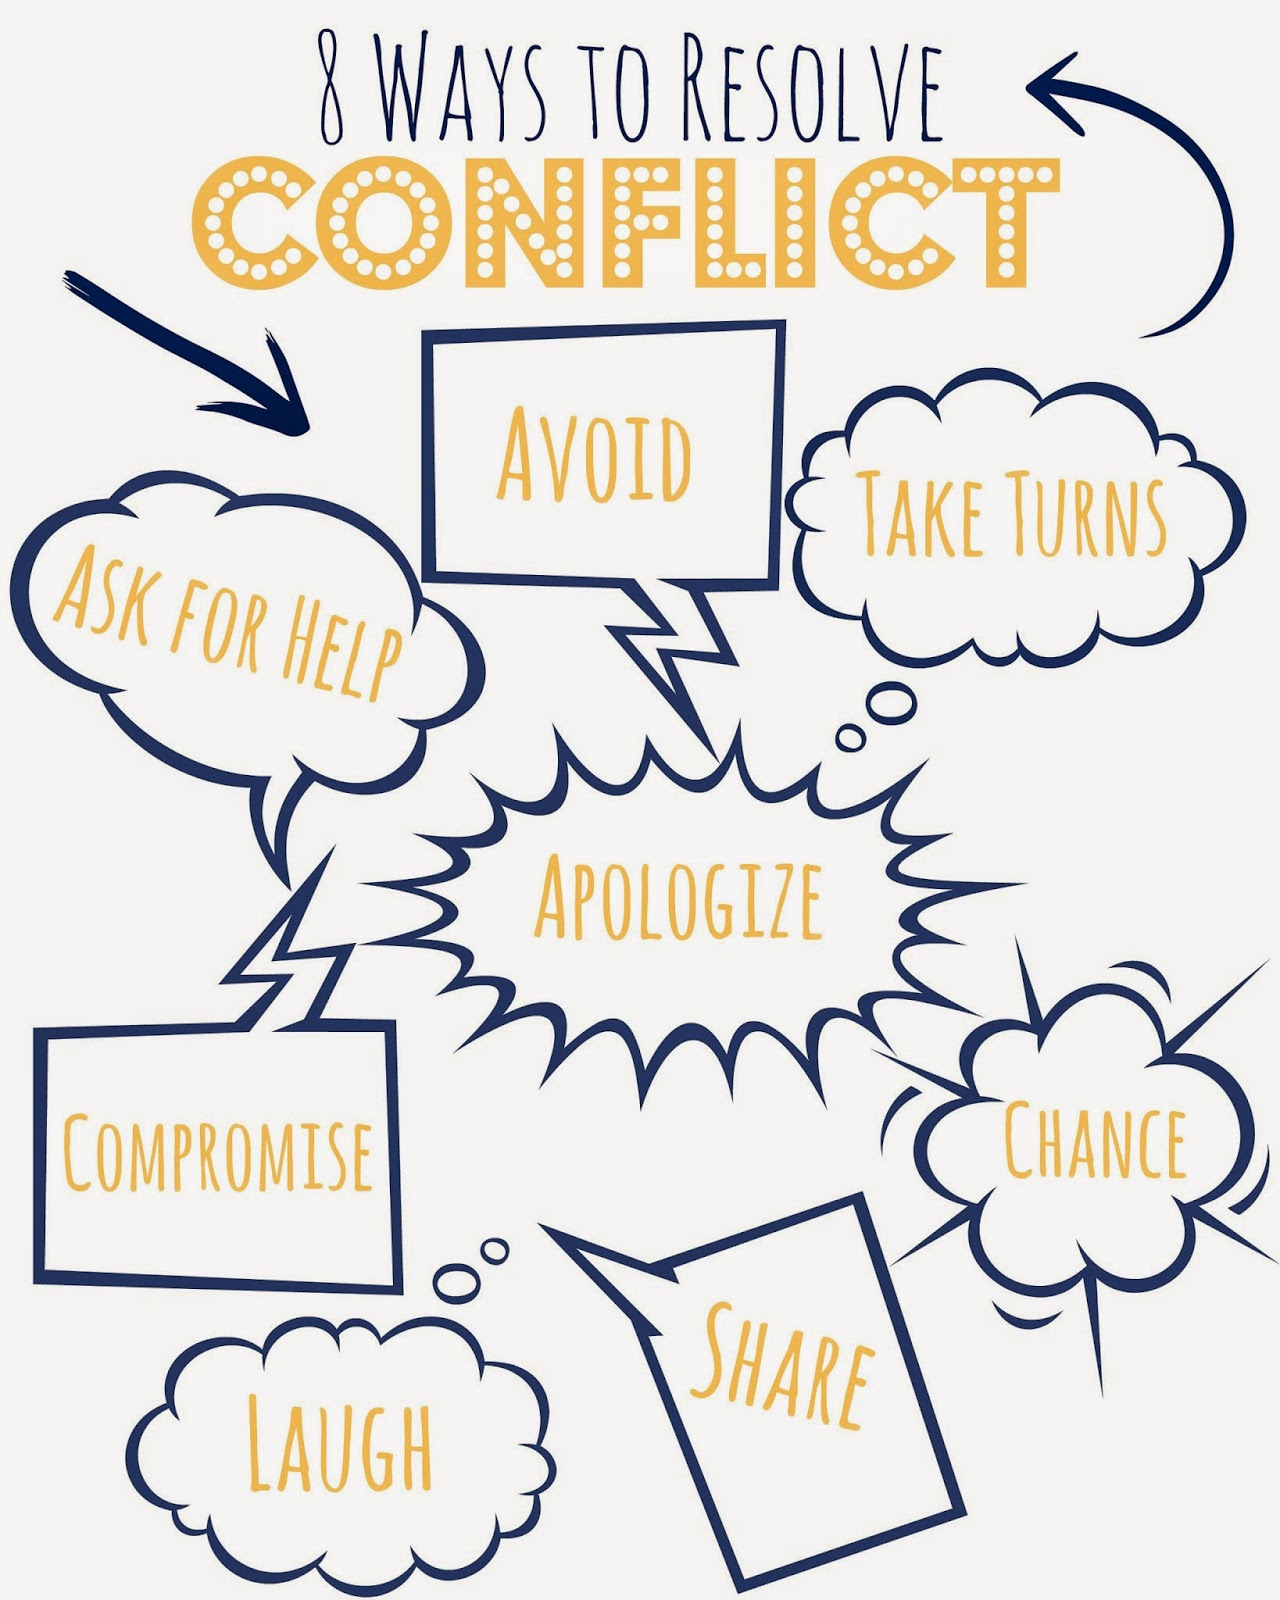 identify skills and approaches needed for resolving conflict Identify skills and approaches needed for resolving conflicts conflict is inevitable even though some conflict can be good most of the time other times it can be harmful to a team.